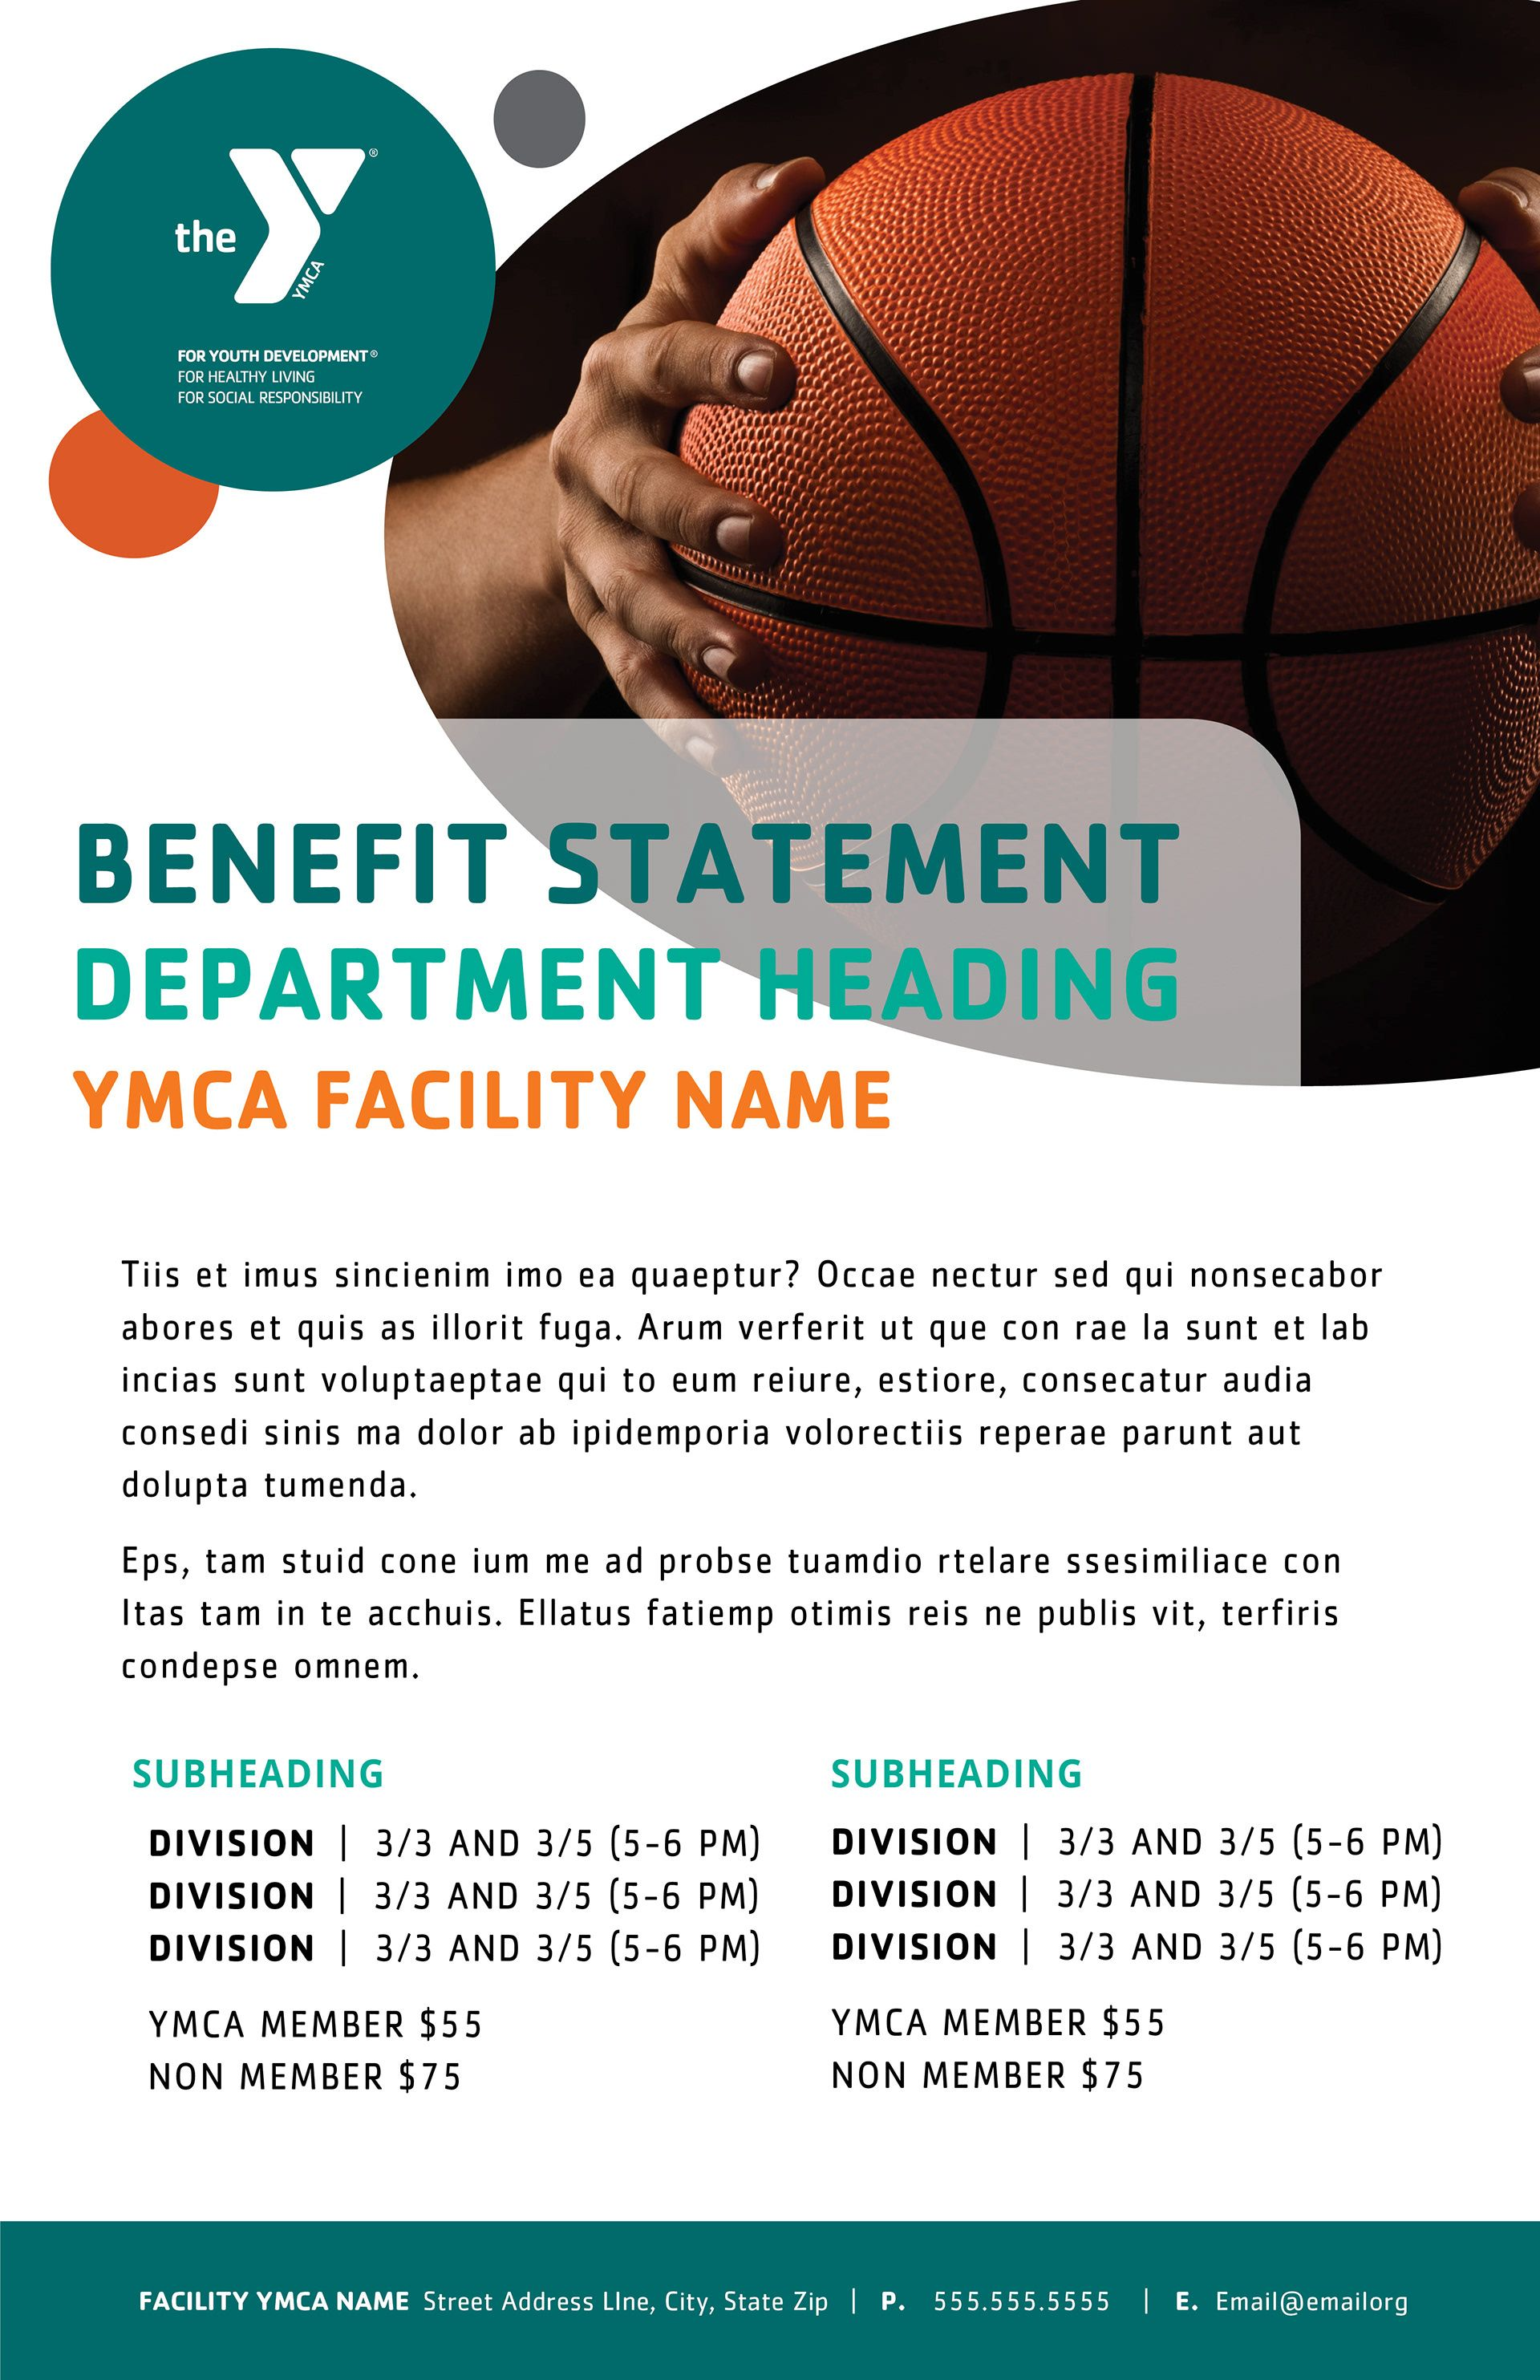 Layout Concept Ymcas Offer A Wide Range Of Programs Basketball Youthdevelopment Youthsports Ymca Healthyliving Fitness Ymca Marketing Poster Portfolio